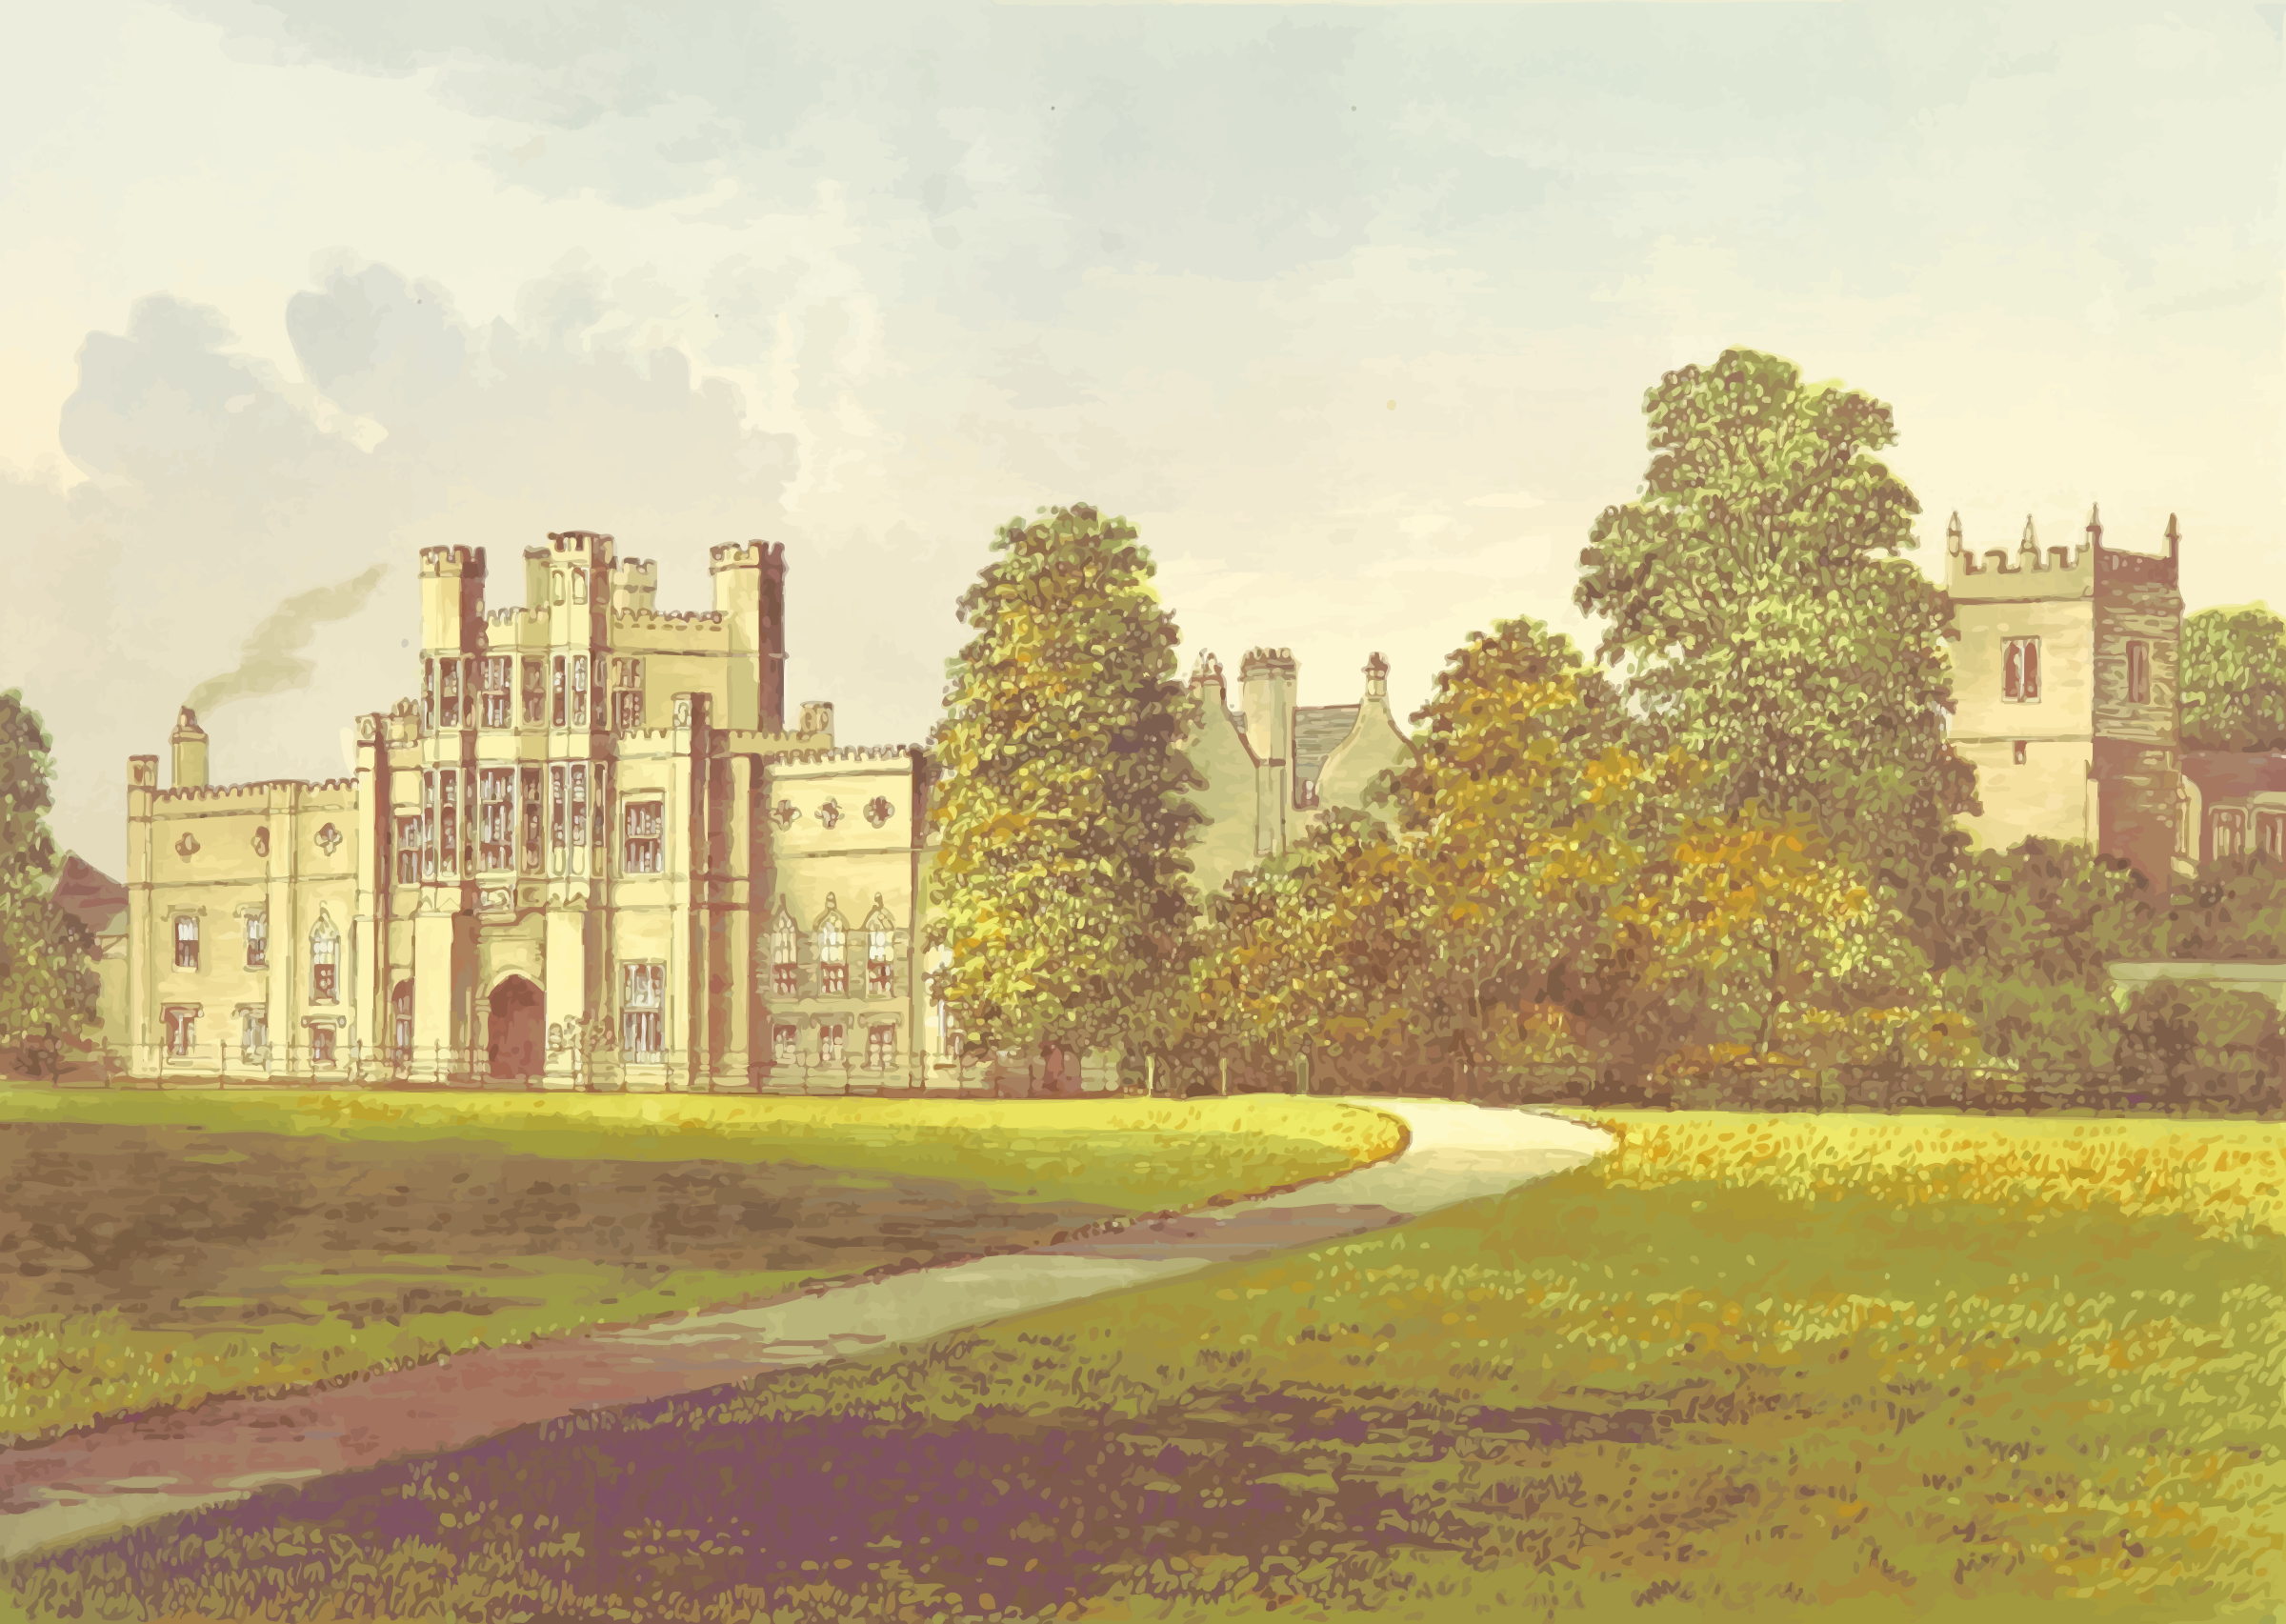 Coughton Court by Firkin